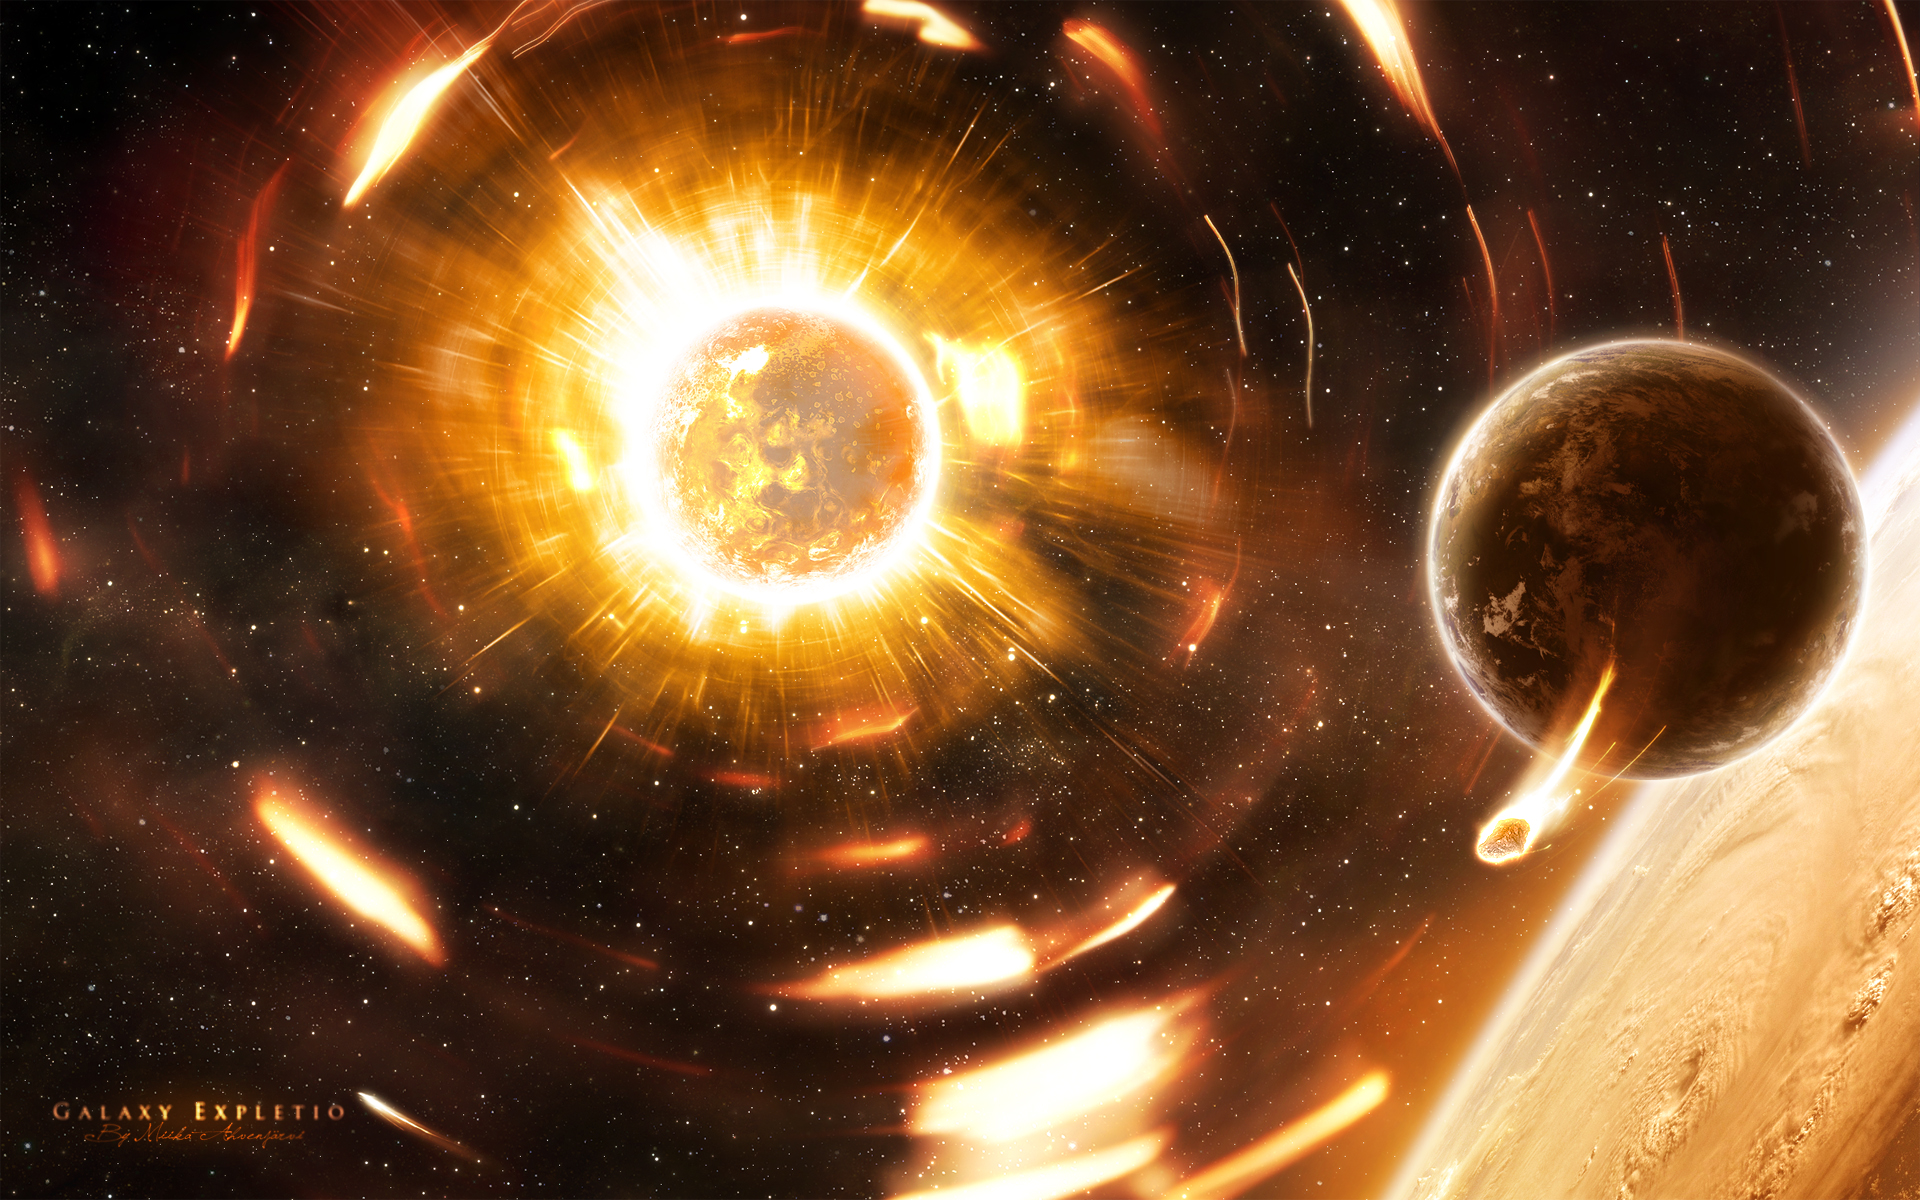 exploding planets wallpapersfor laptops - photo #9